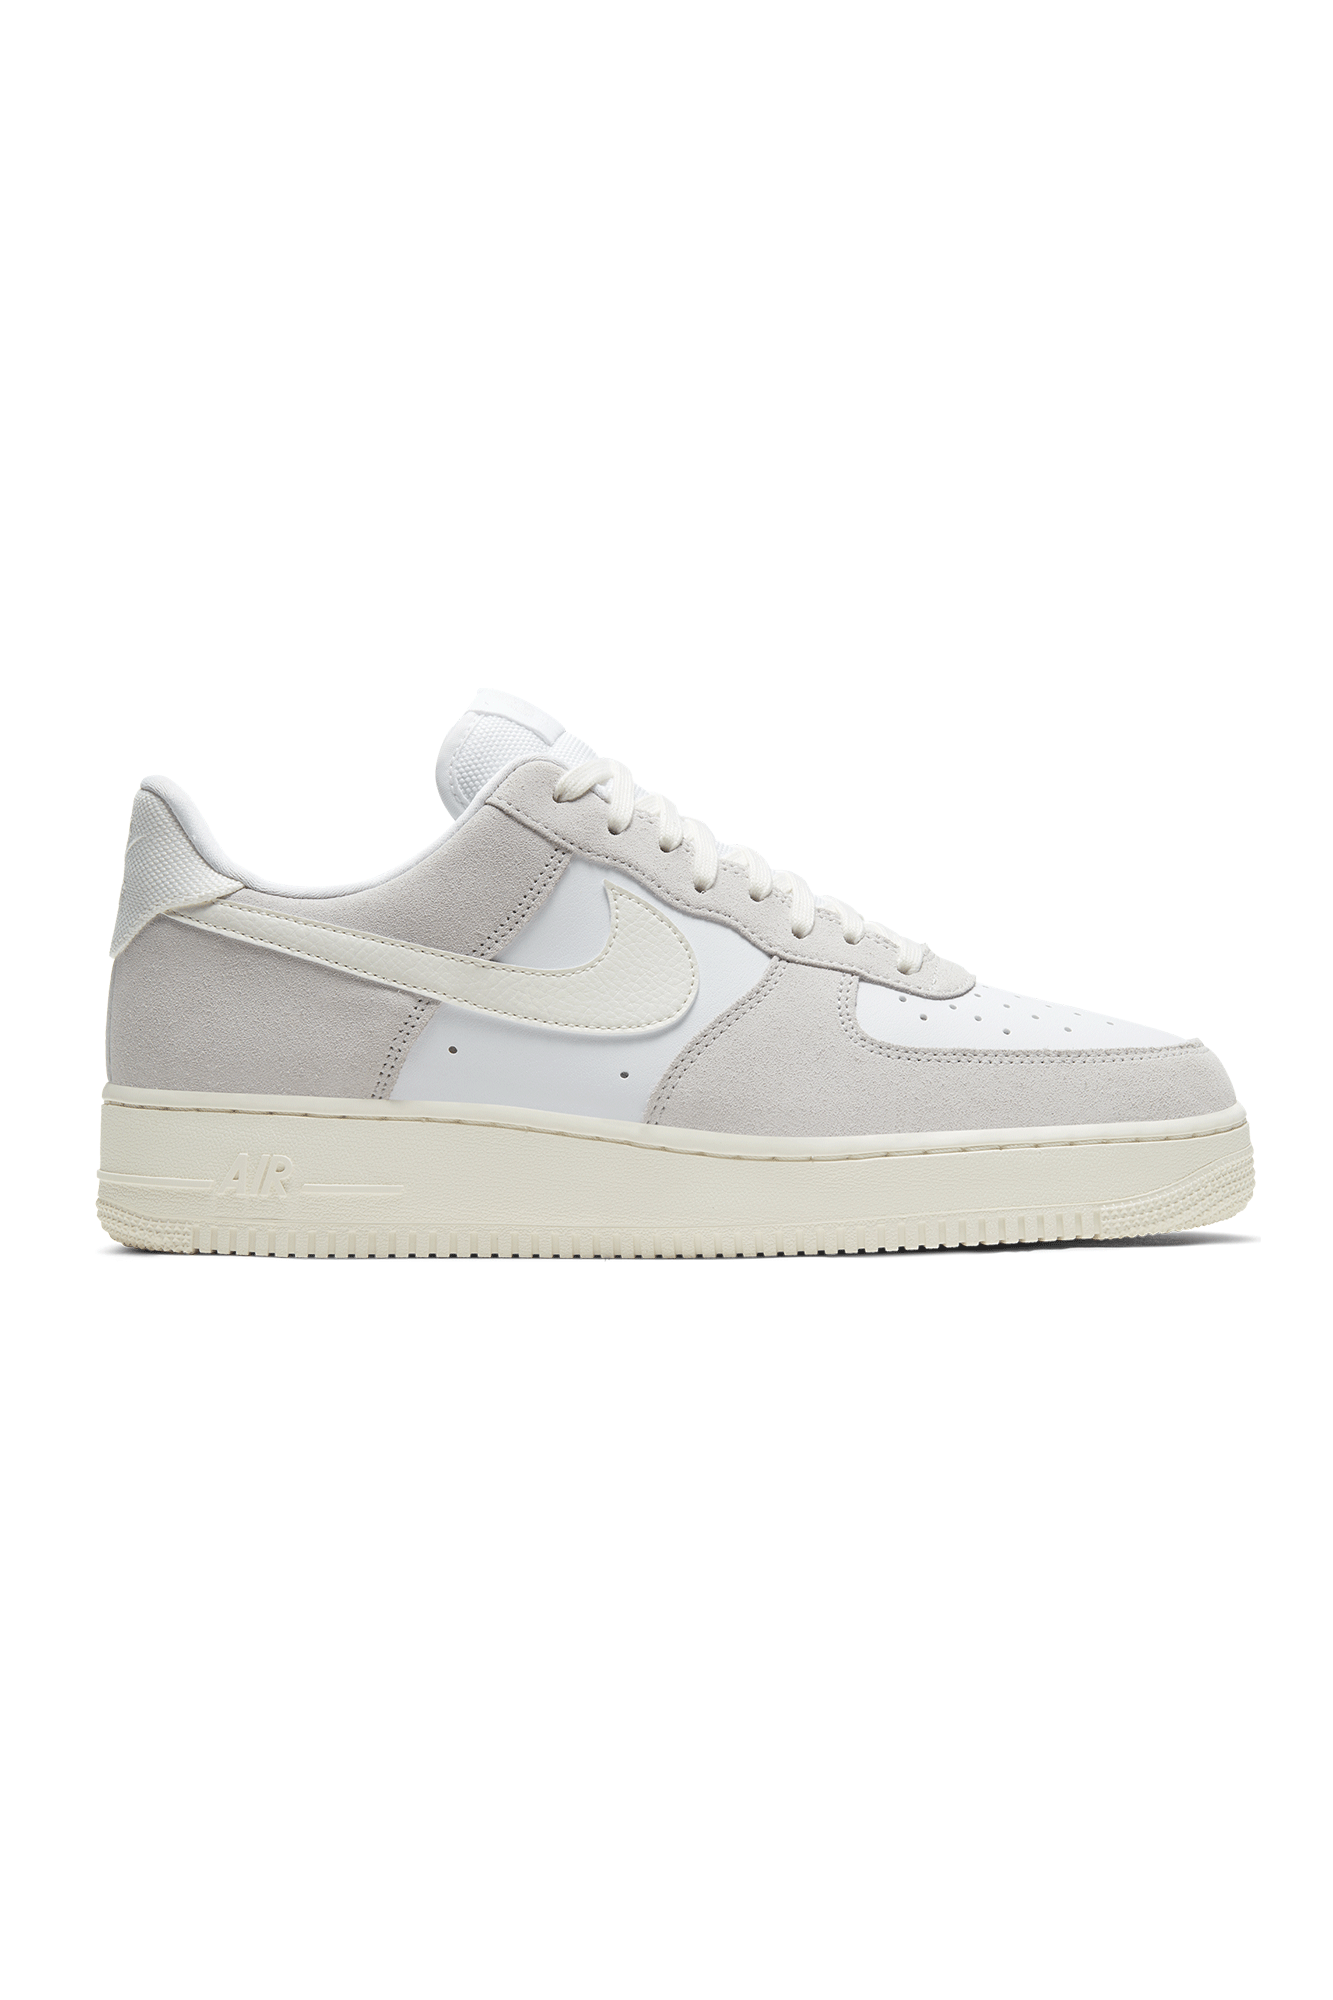 Air Force 1 LV8 White